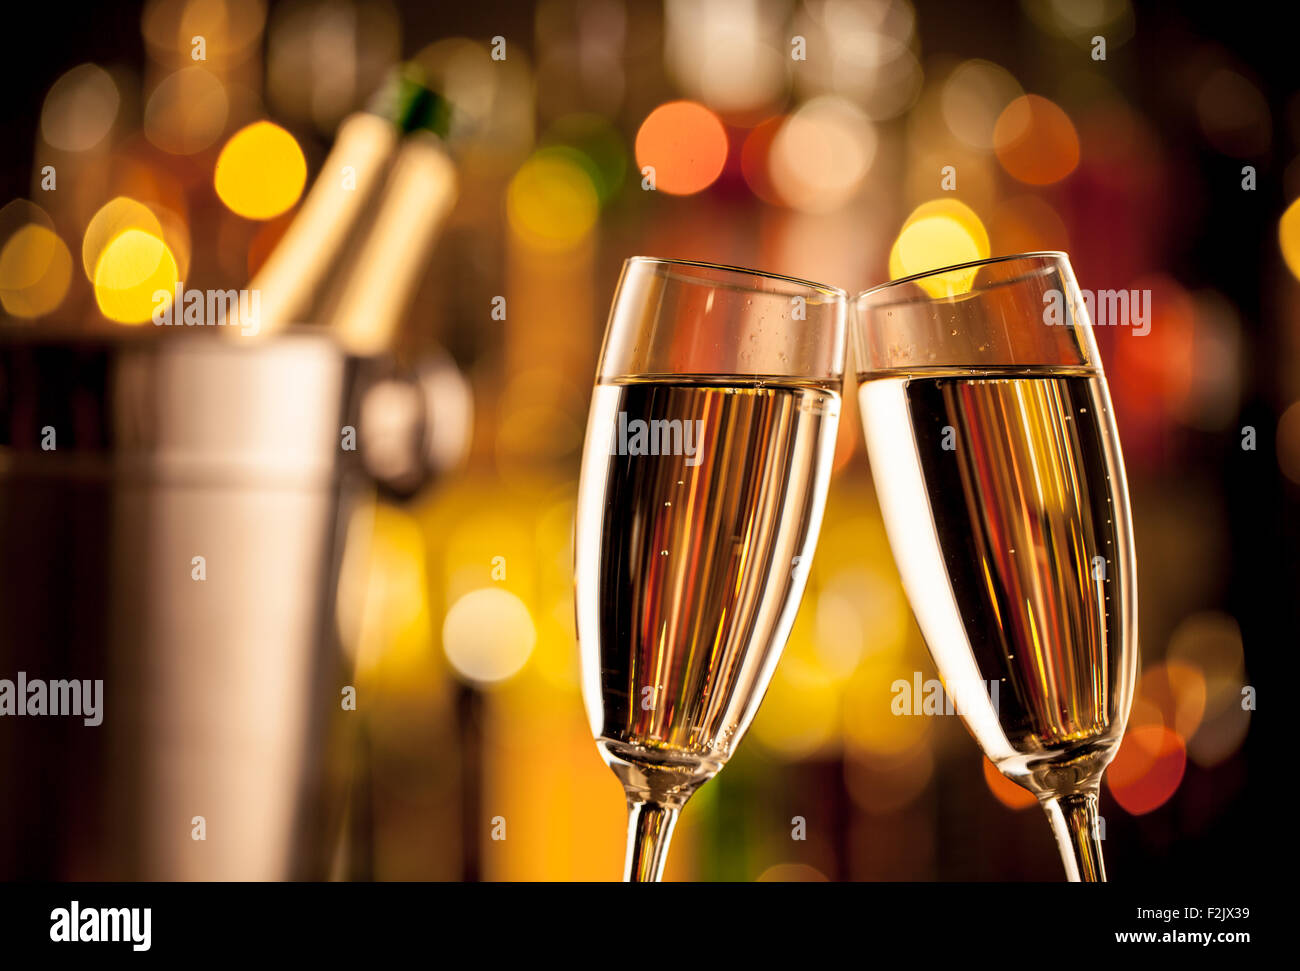 Glasses of champagne on bar counter - Stock Image